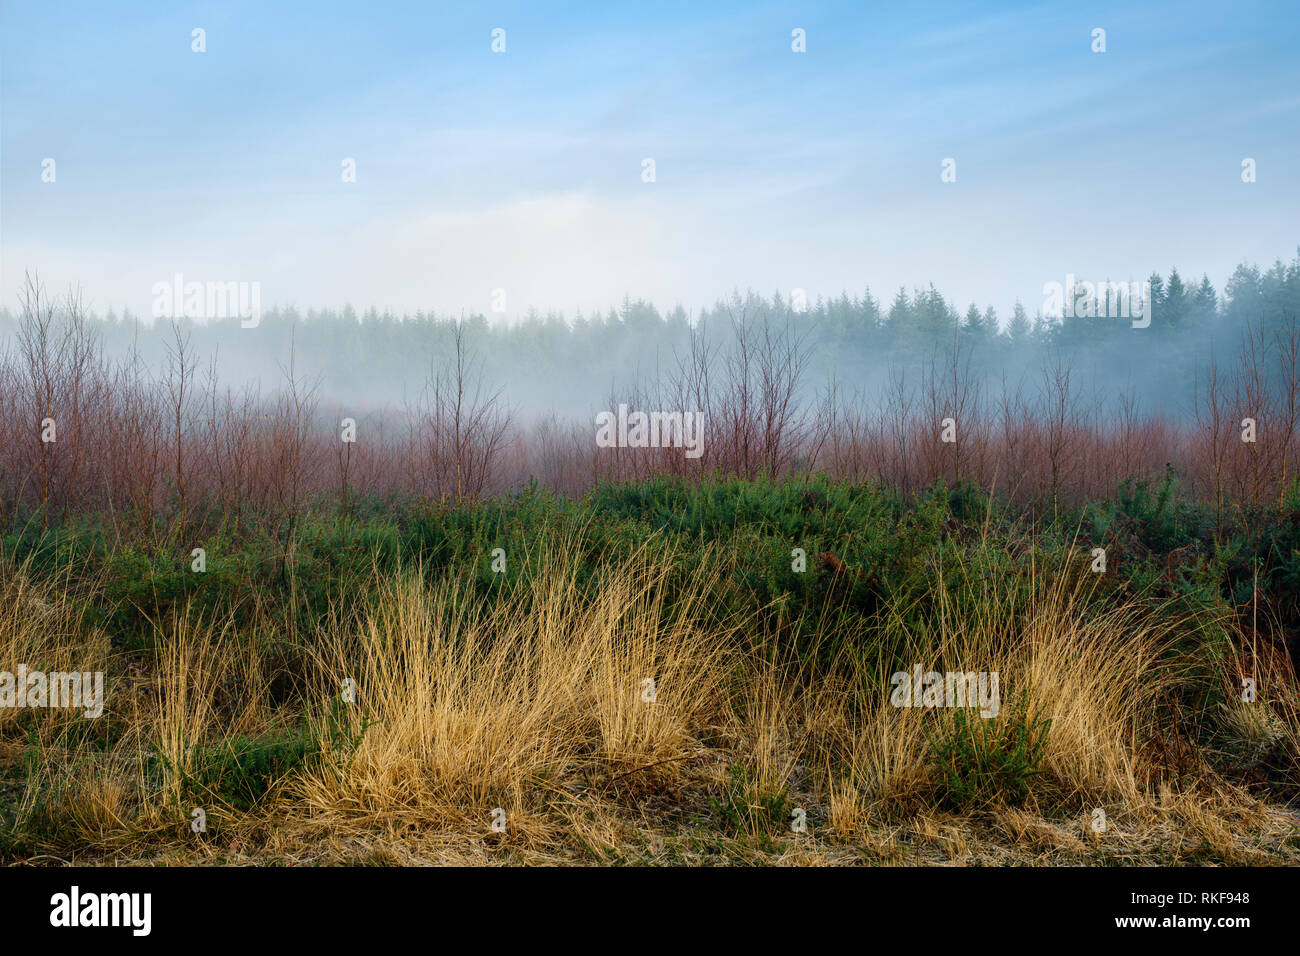 Morning mist over Beacon Hill managed heathland in South Wales. - Stock Image